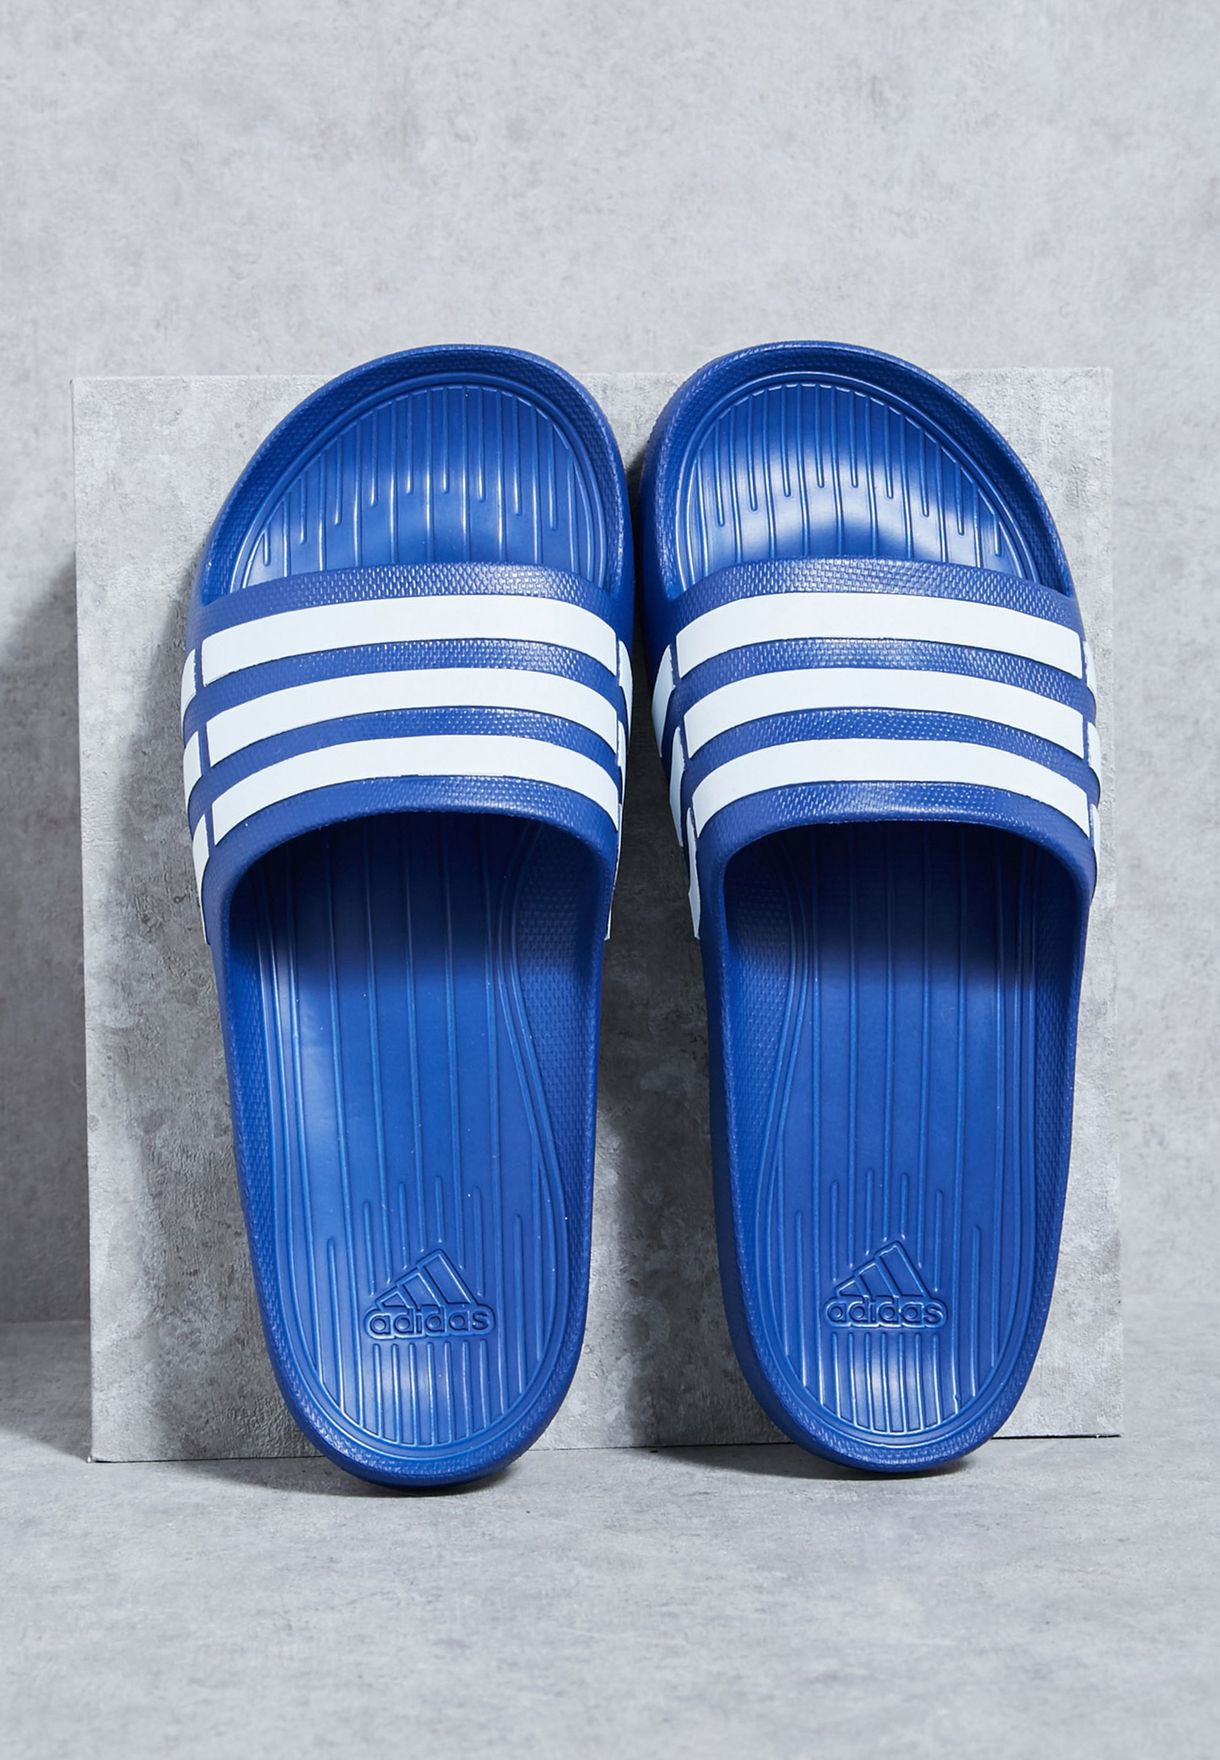 new styles 5a485 363d6 Shop adidas blue Duramo Slide G14309 for Men in UAE - AD476S